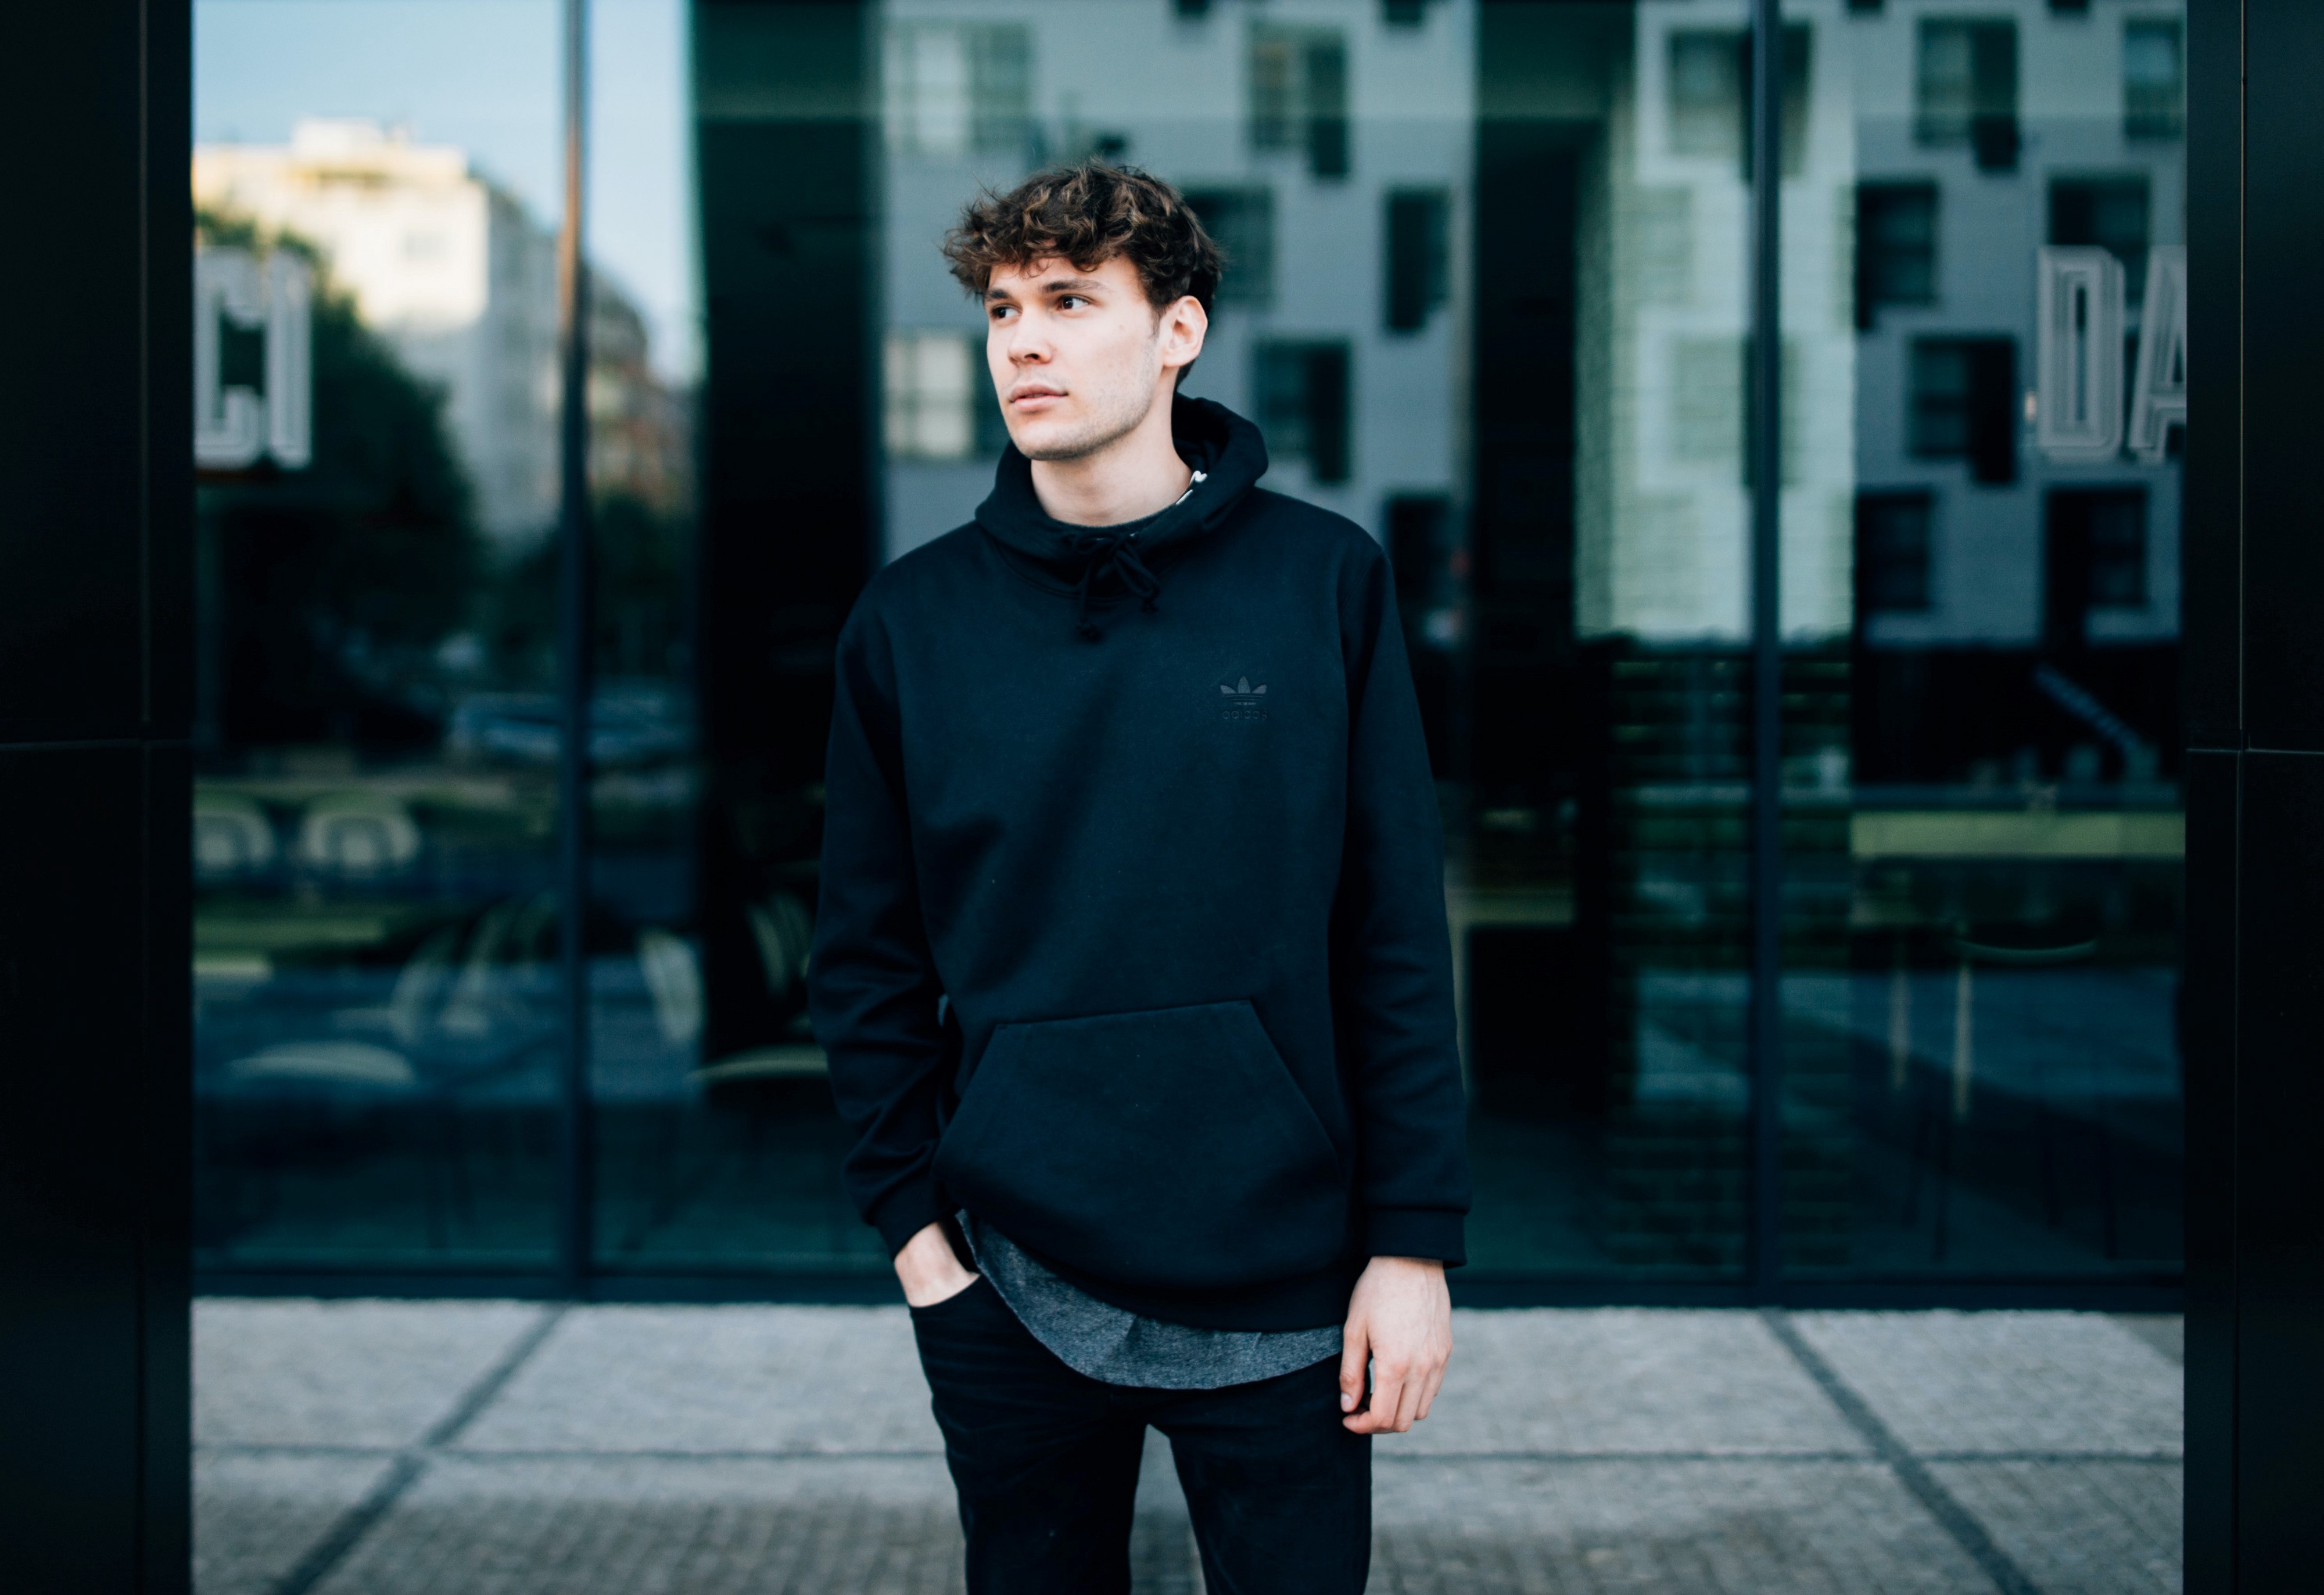 Man with dark curly hair with hand in pocket wearing long sleeve sweater standing on sidewalk with reflection of city behind